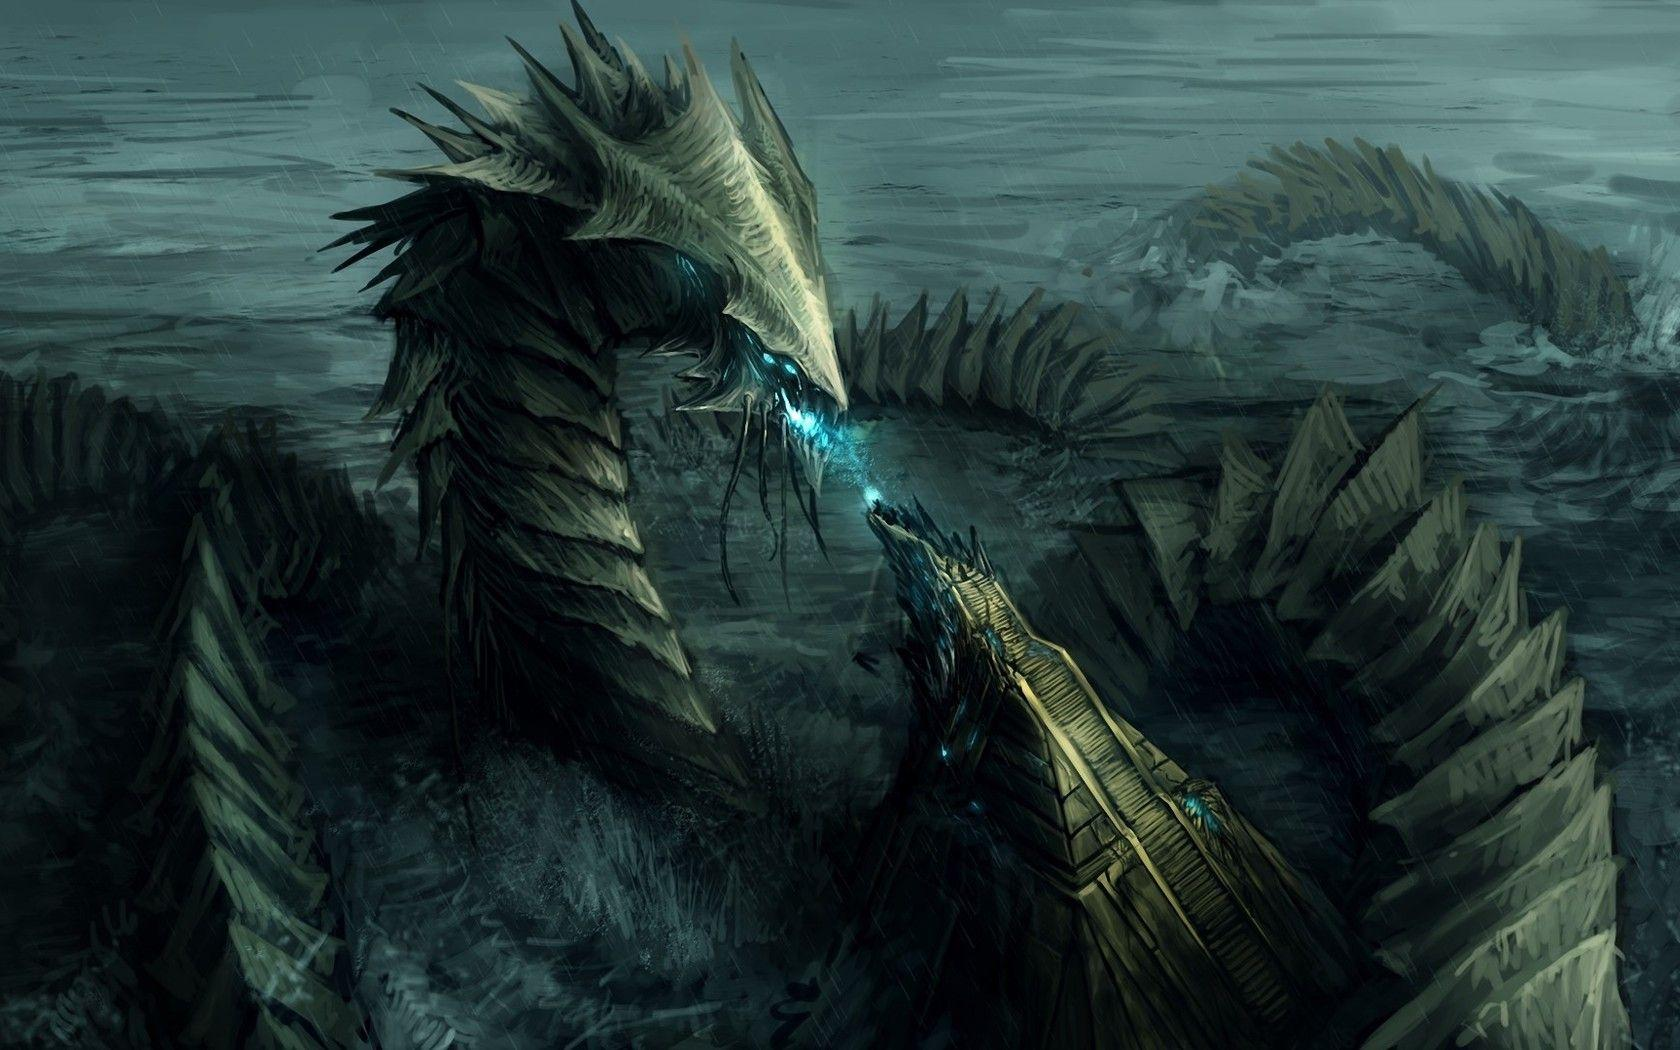 Underwater Monster wallpaper | Dragons and Griffons | Pinterest ...